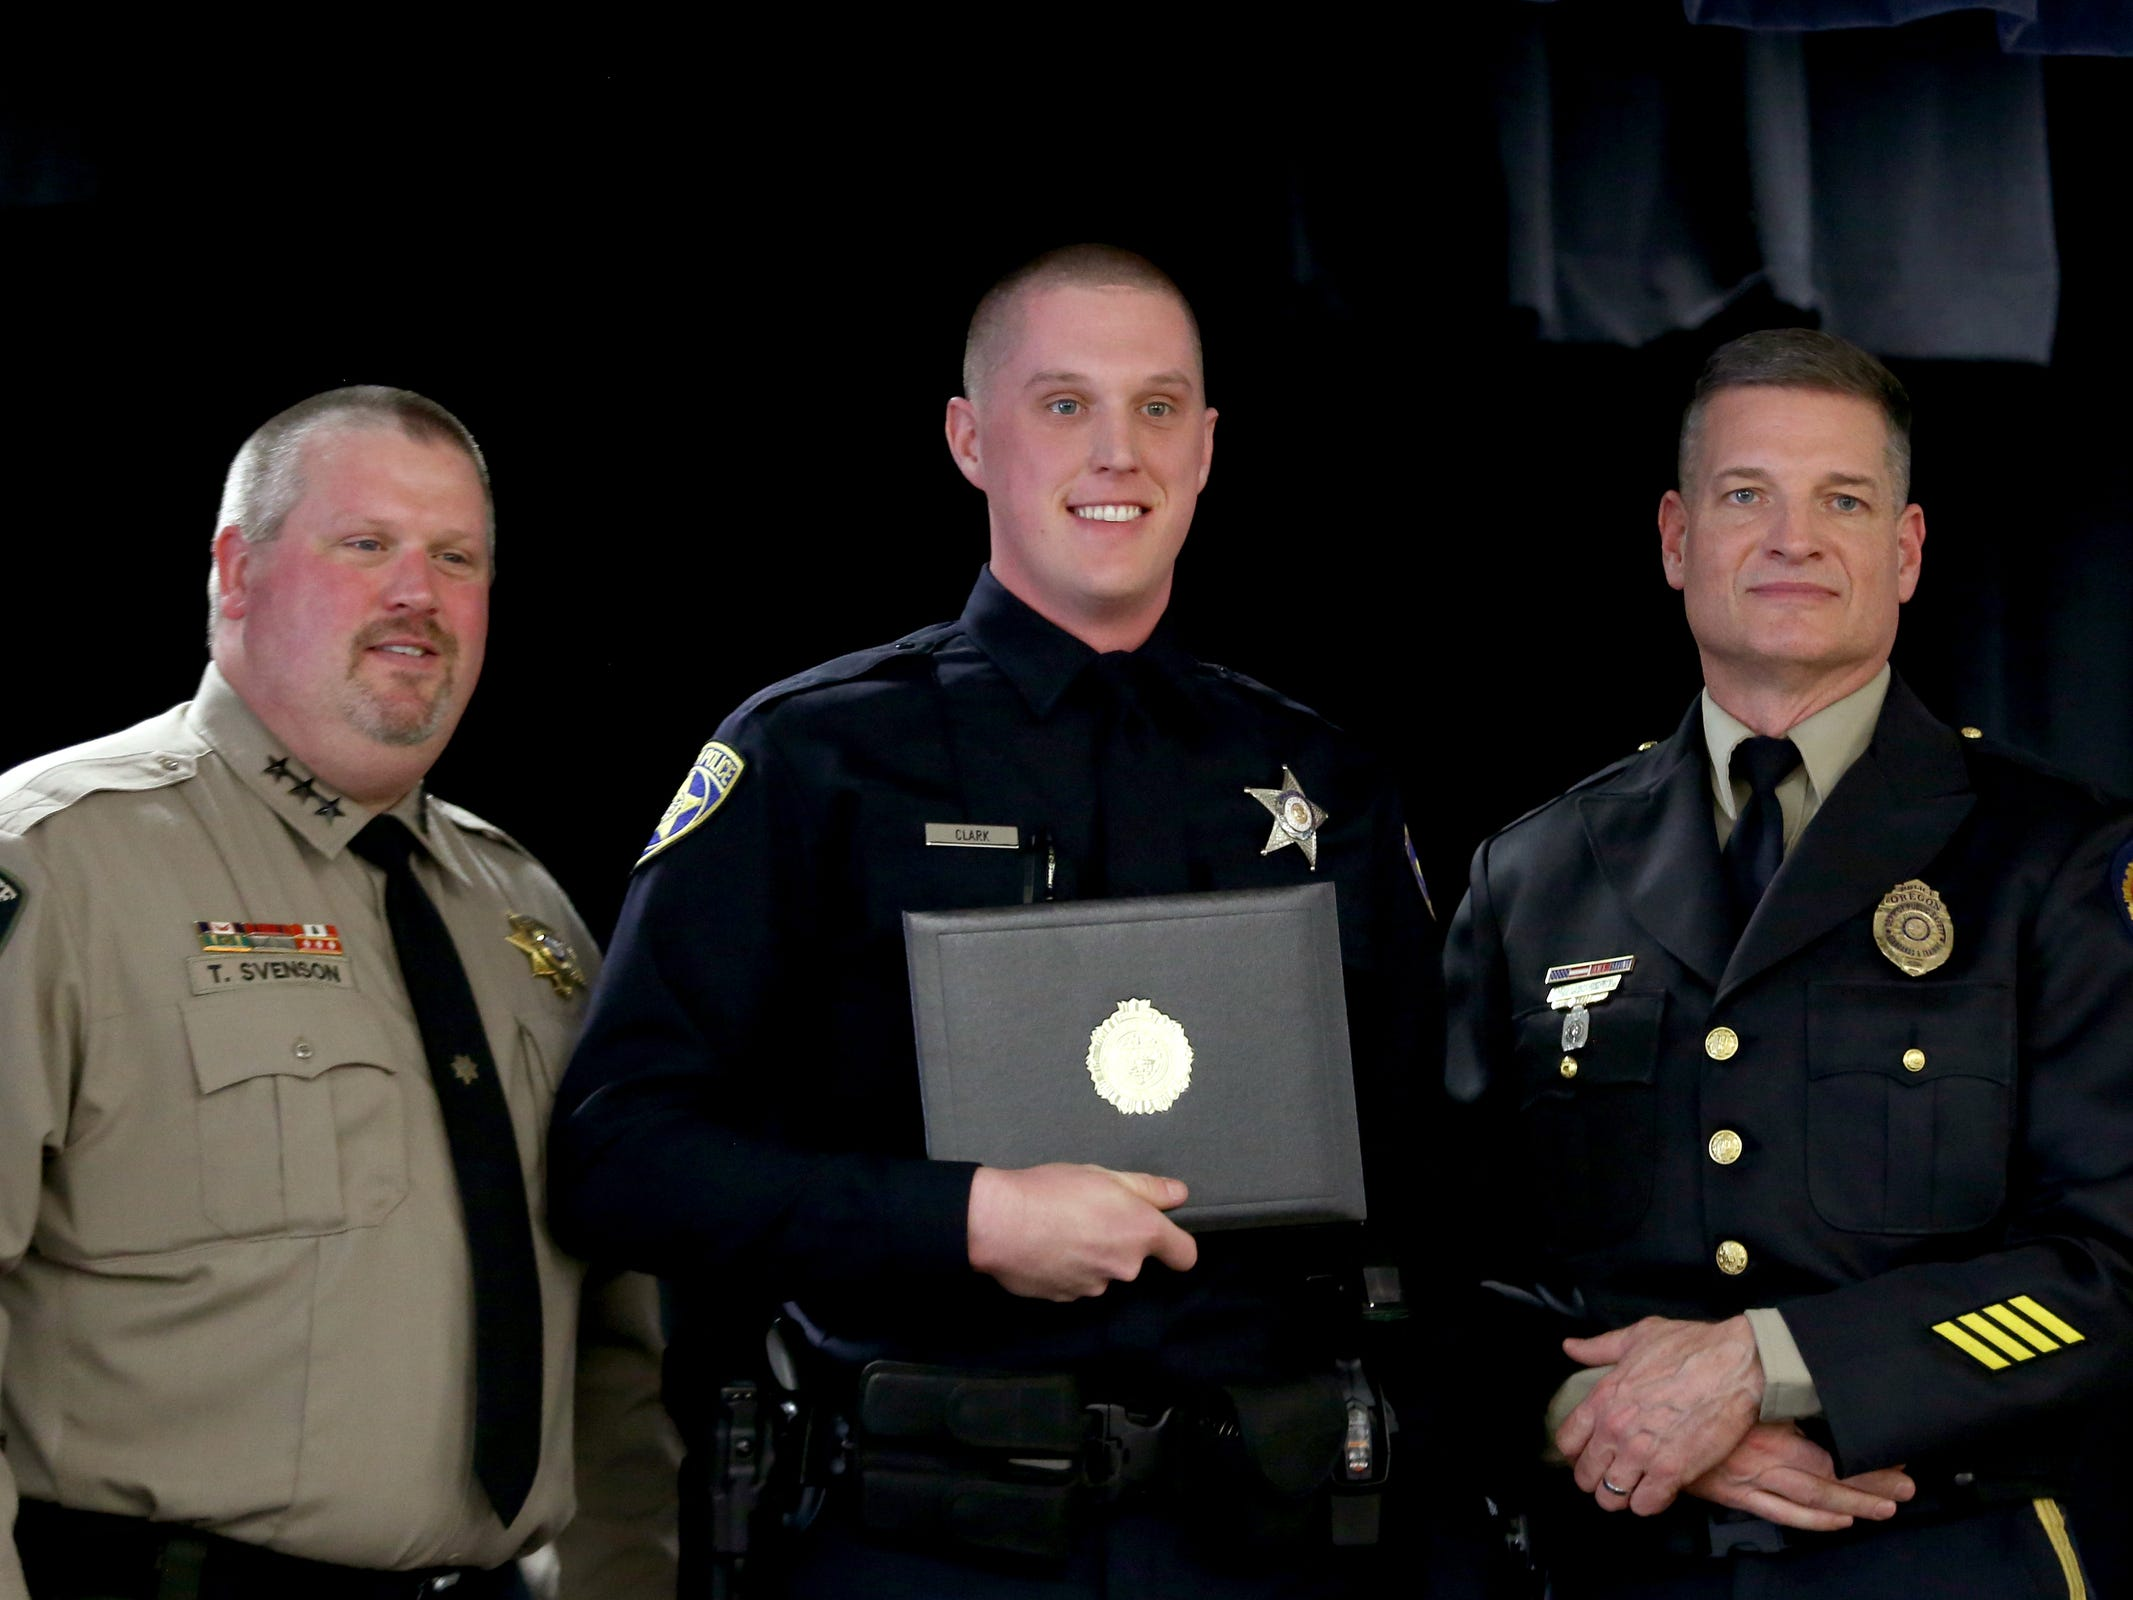 Joshua Clark, center, a new Salem Police officer, accepts his graduation certificate during a Basic Police Class graduation ceremony at the Department of Public Safety Standards and Training in Salem on March 15, 2019.